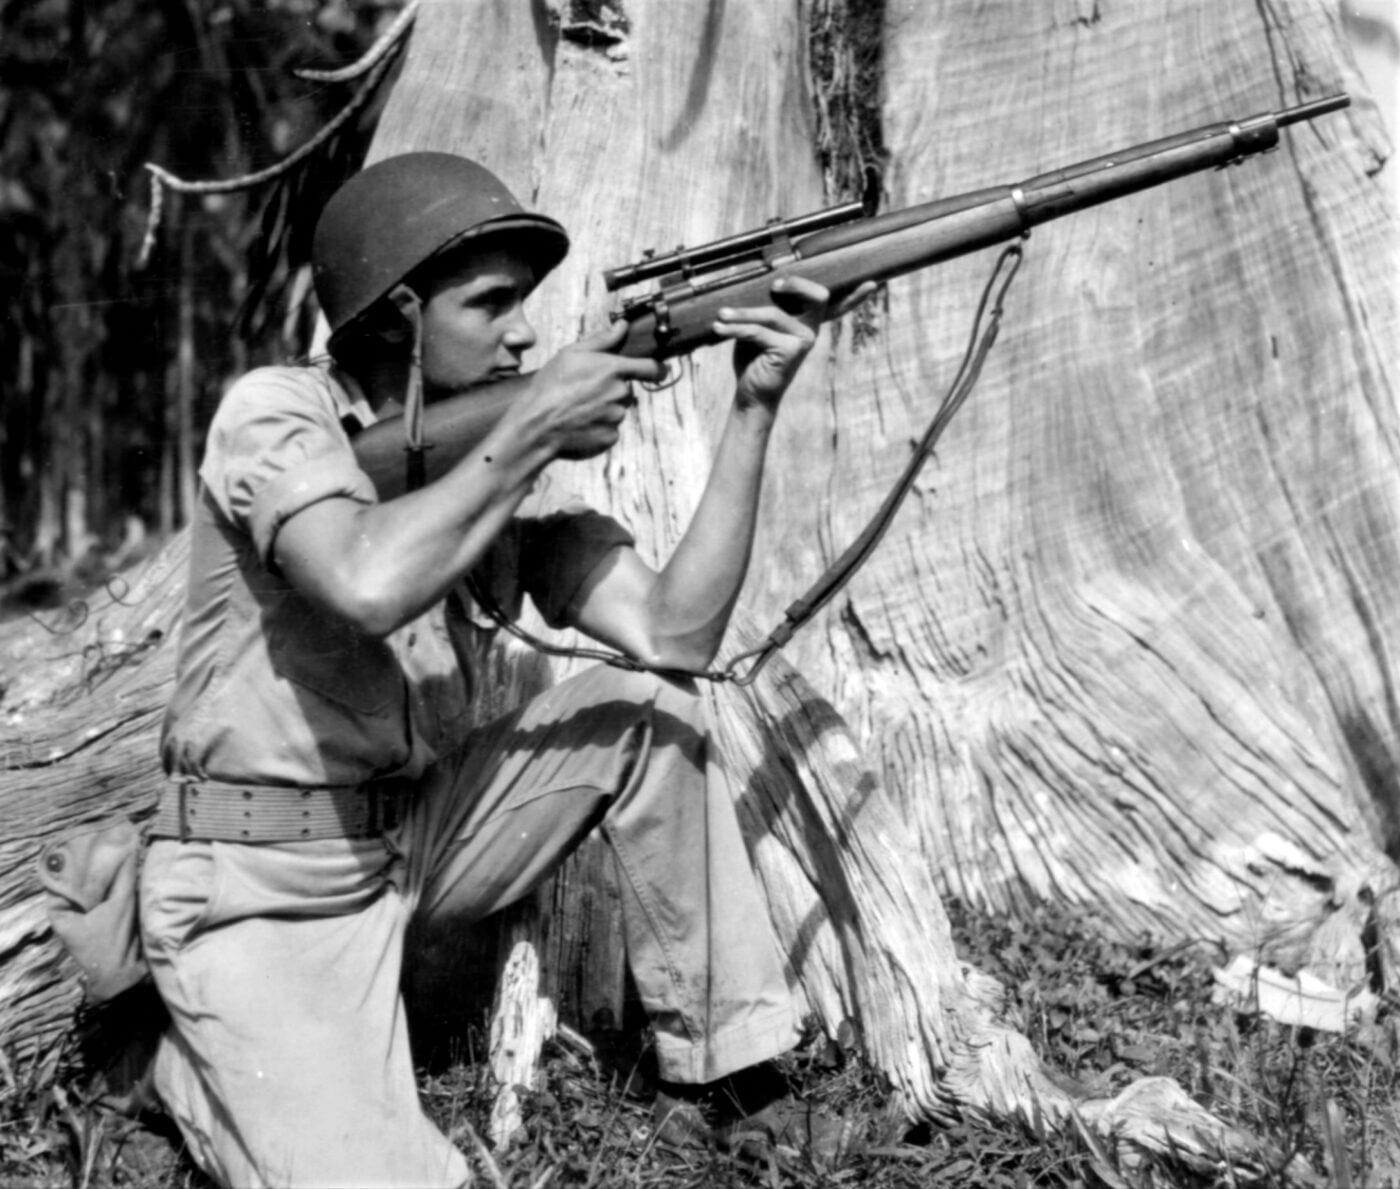 Springfield M1903A4 sniper rifle in World War II